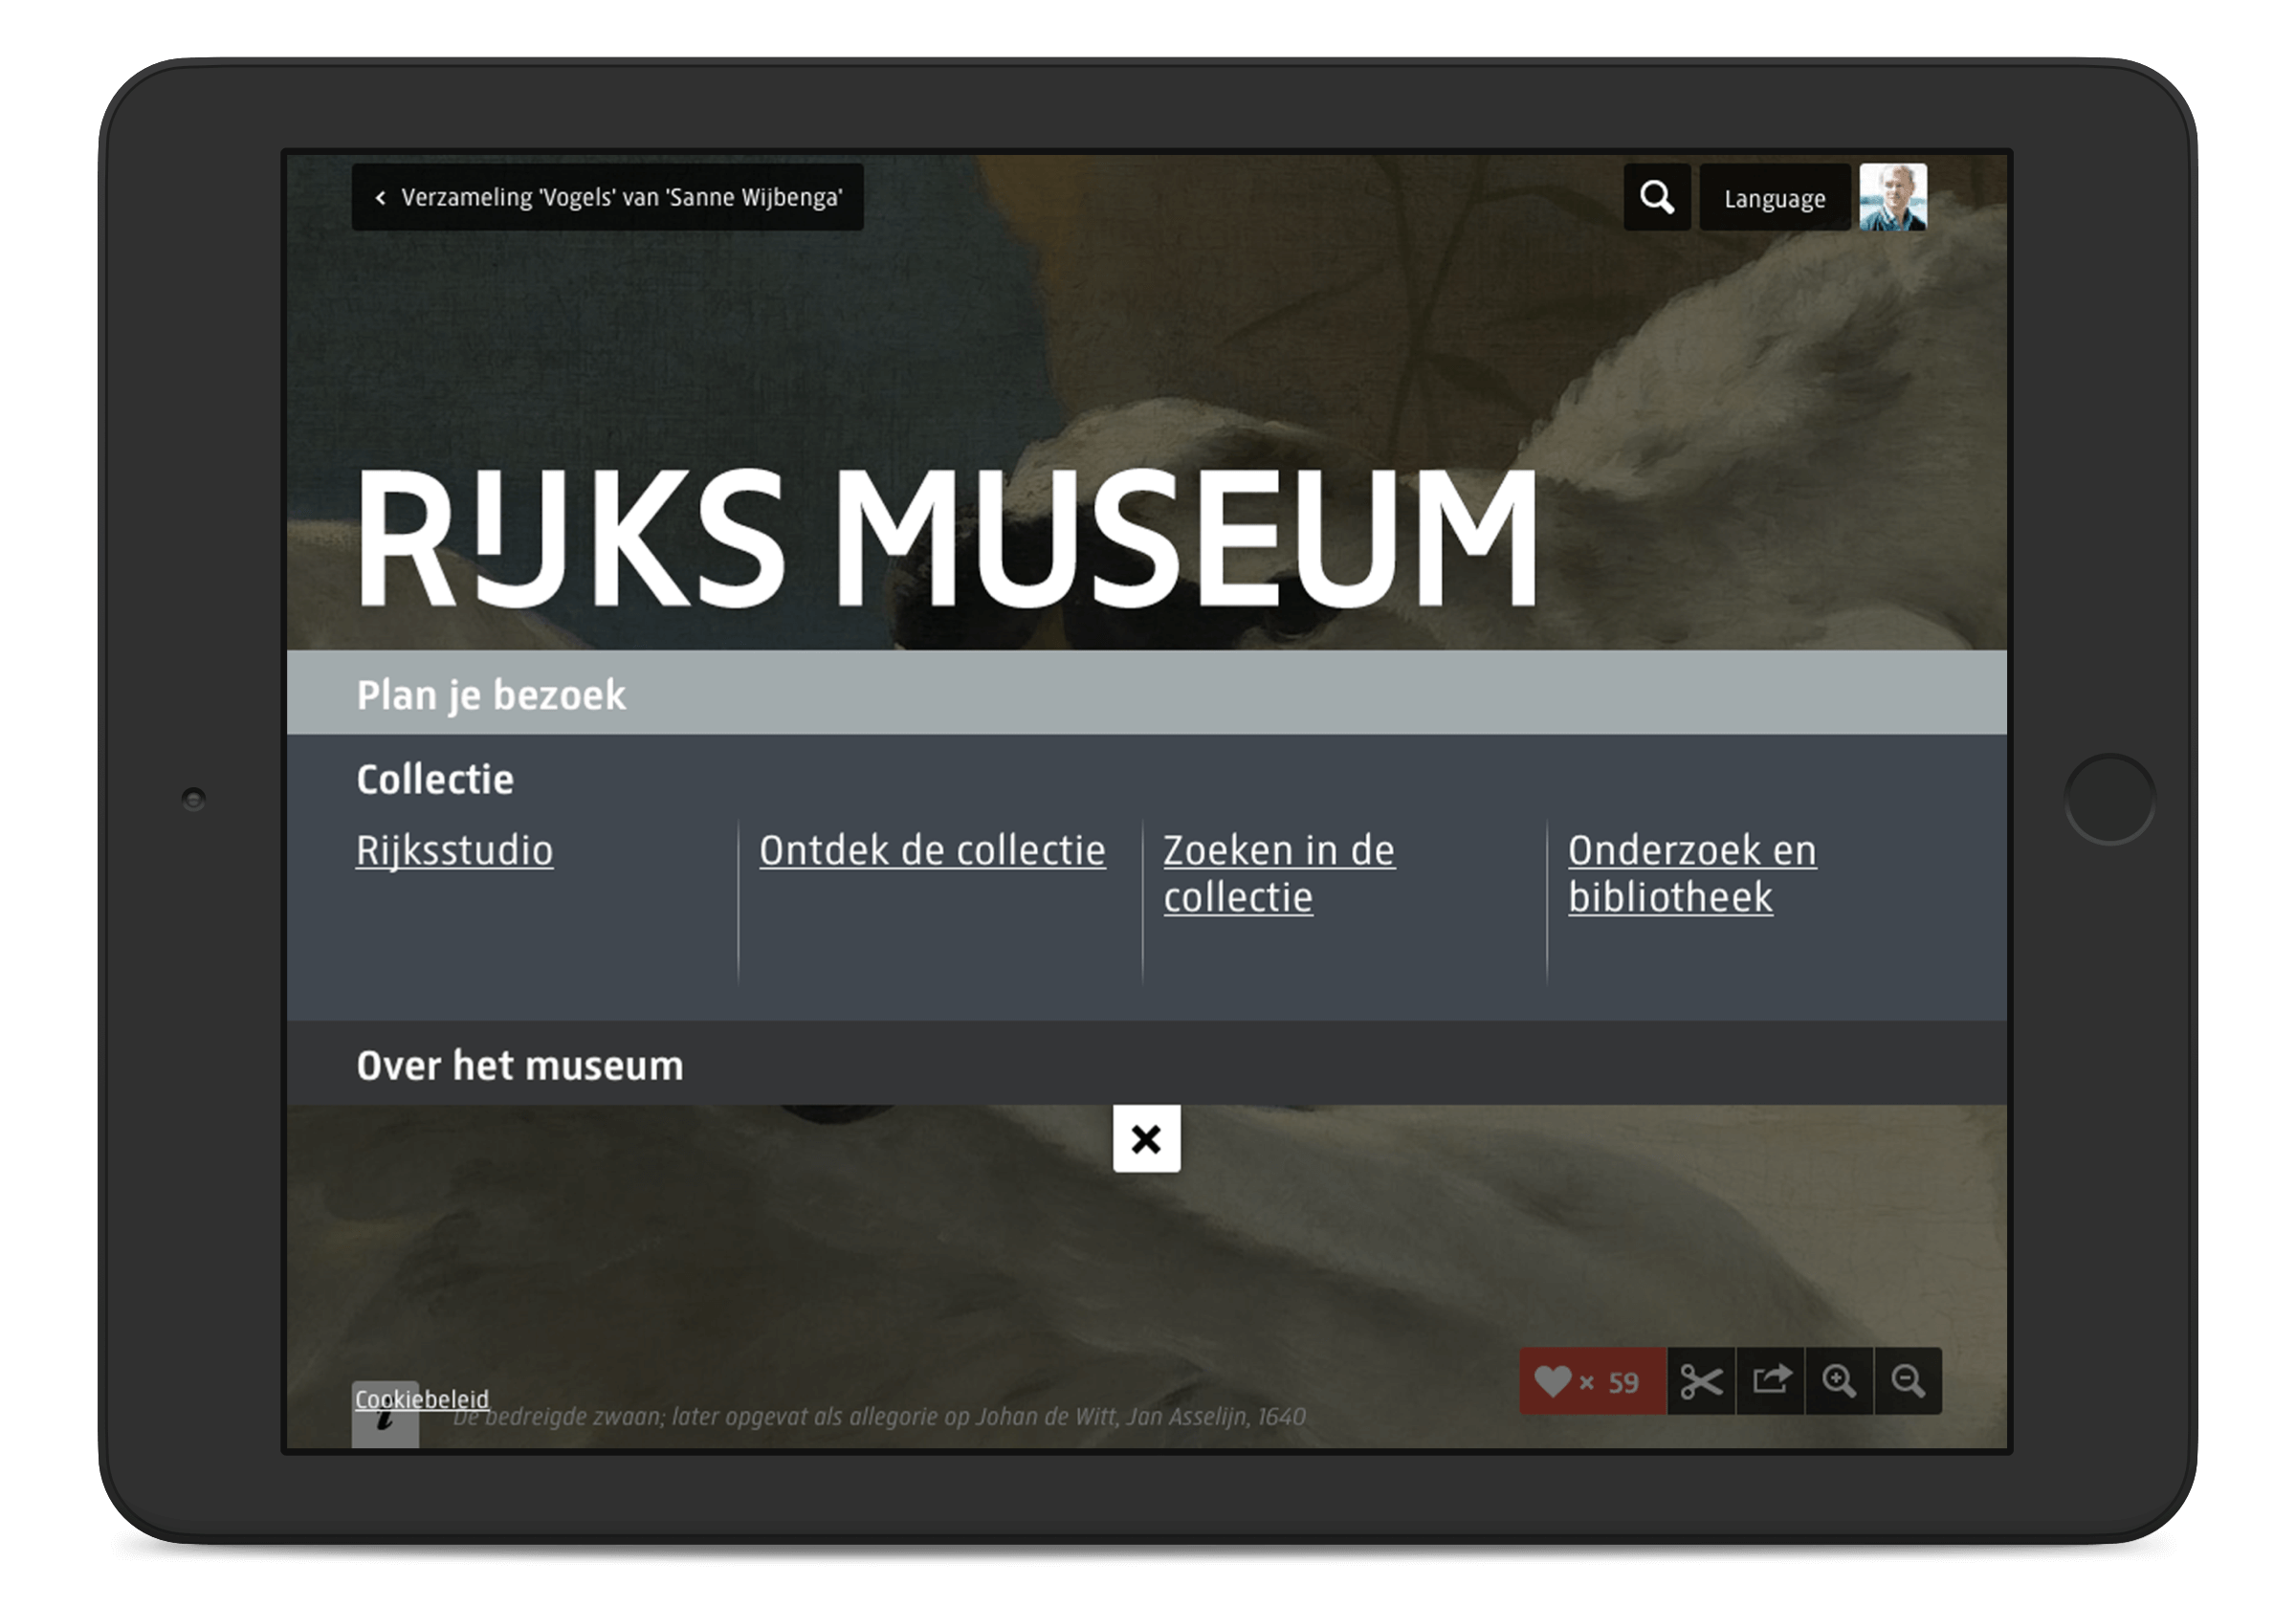 Rijksmuseum website menu